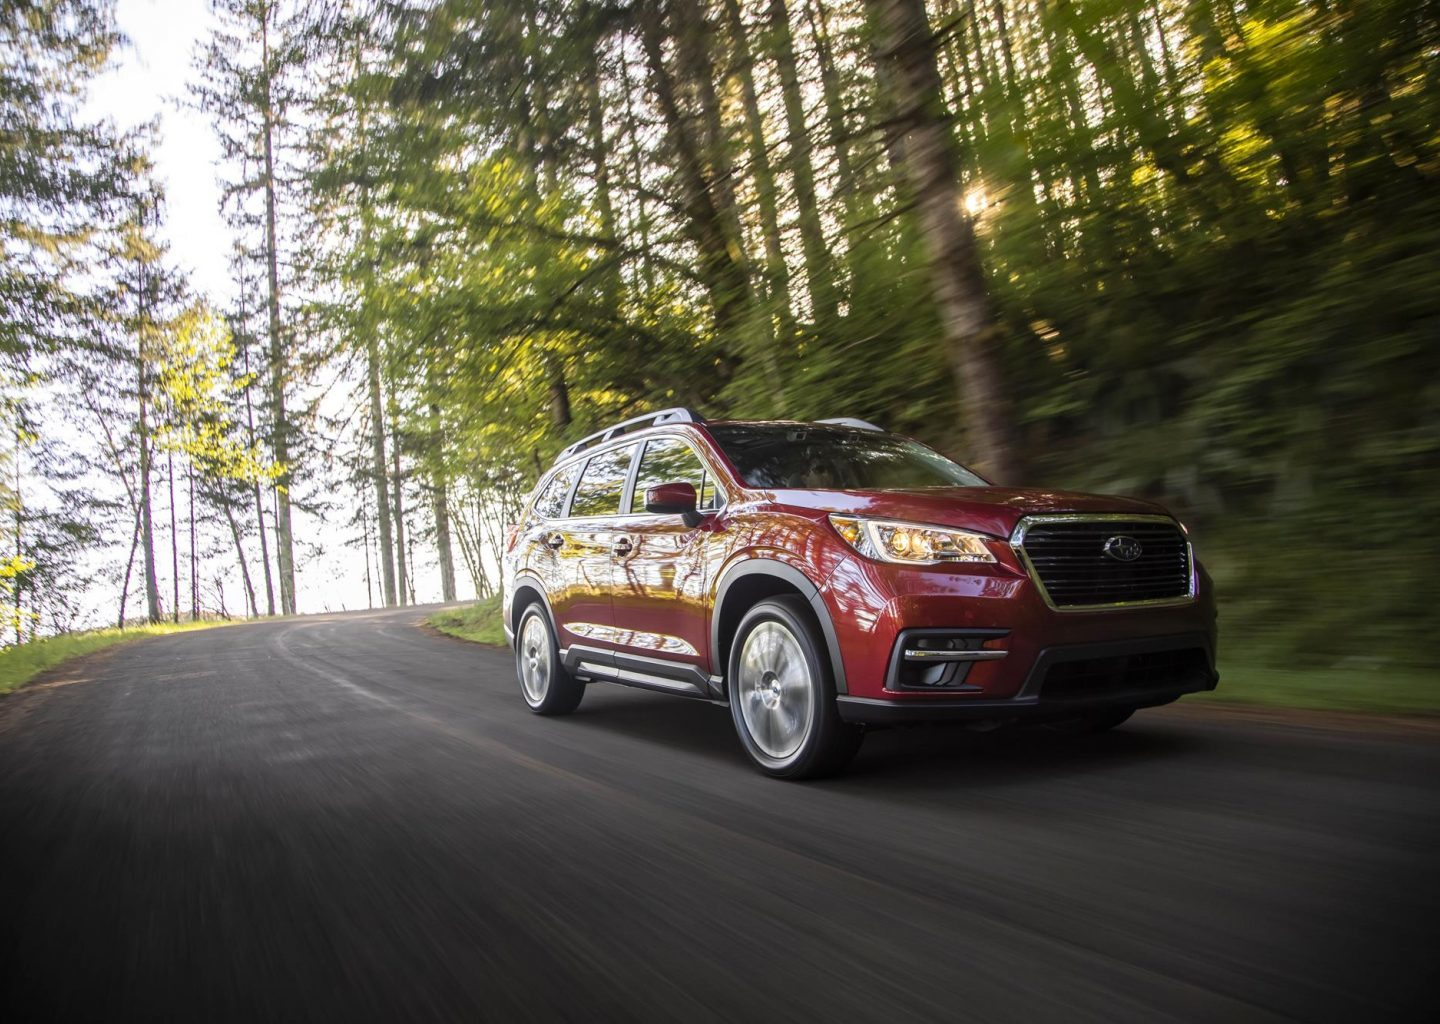 2020 Subaru Ascent Adds Some Convenience to Family Hauling